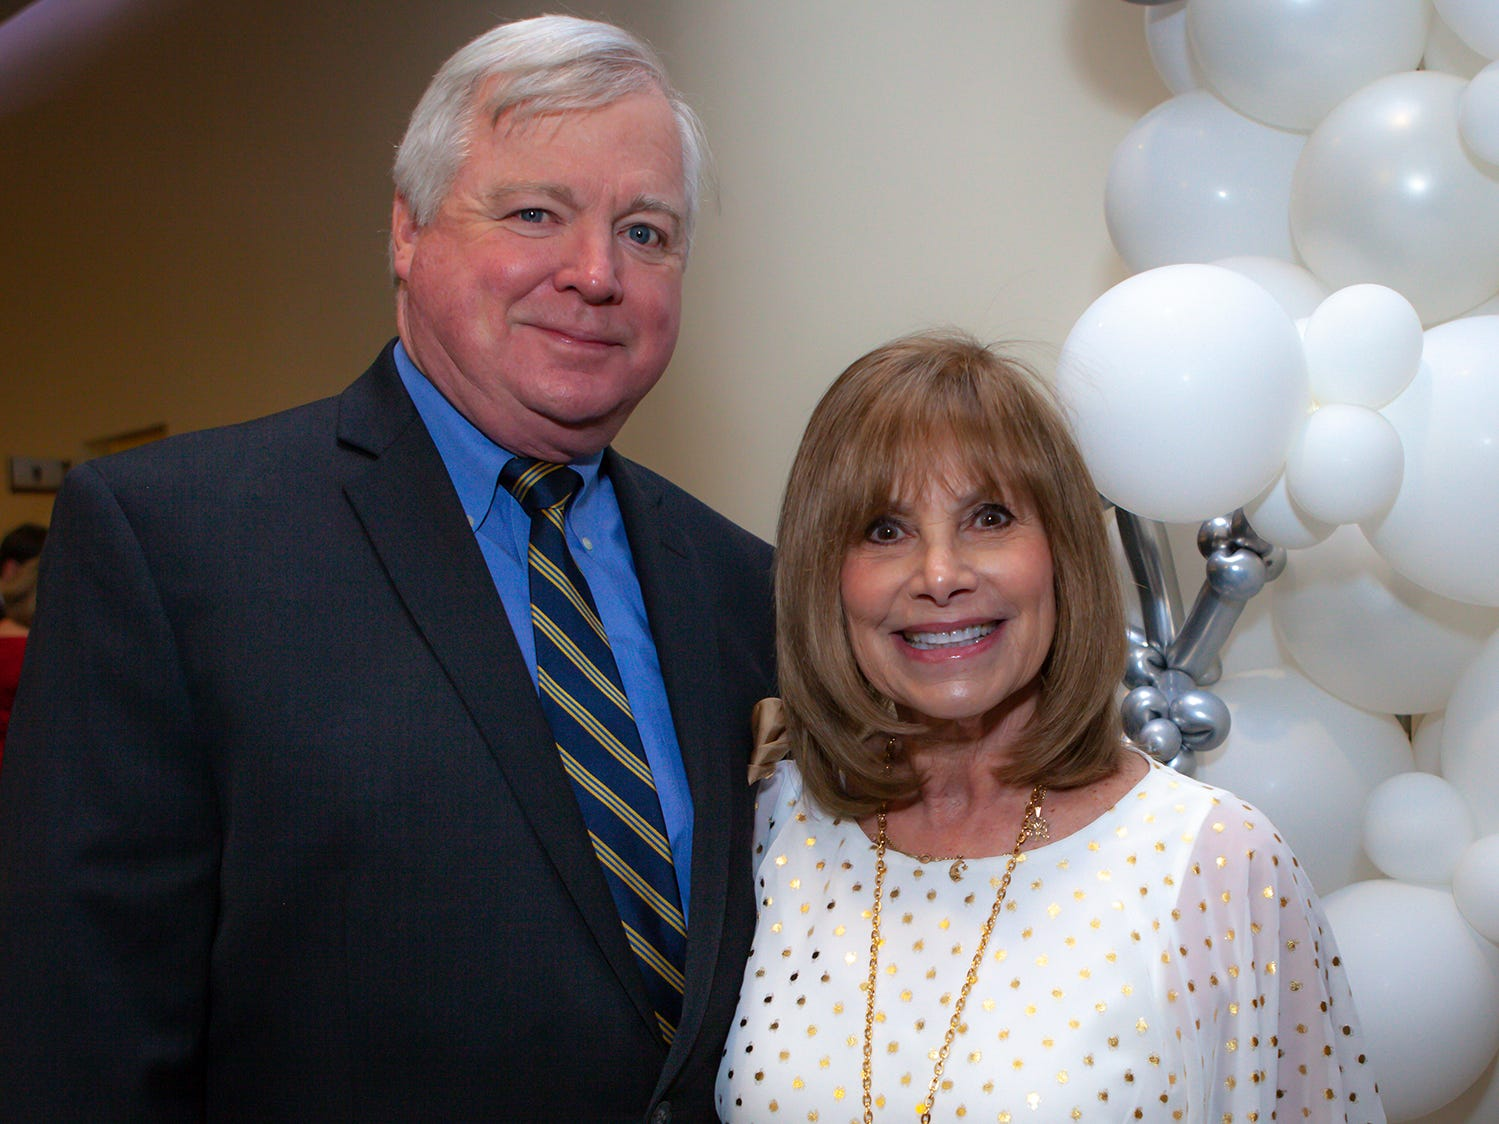 David and Candyce Corcoran at the 2019 Excellence in Education Gala, hosted by the City Schools Foundation on Friday, Jan. 25, 2019 at Stones River Country Club in Murfreesboro